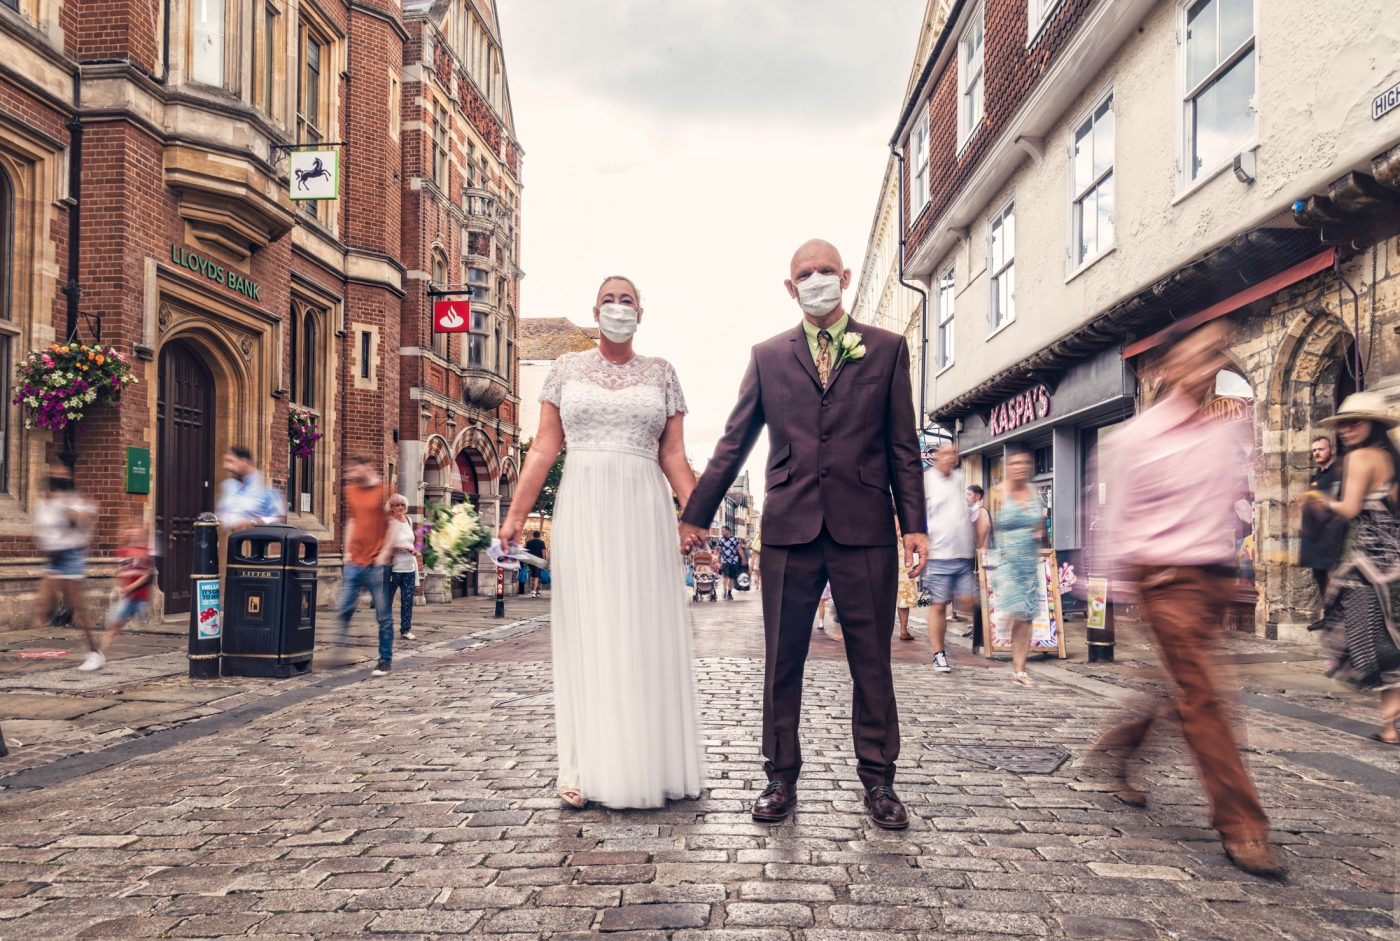 Wedding Photography by Tim Simpson Photography